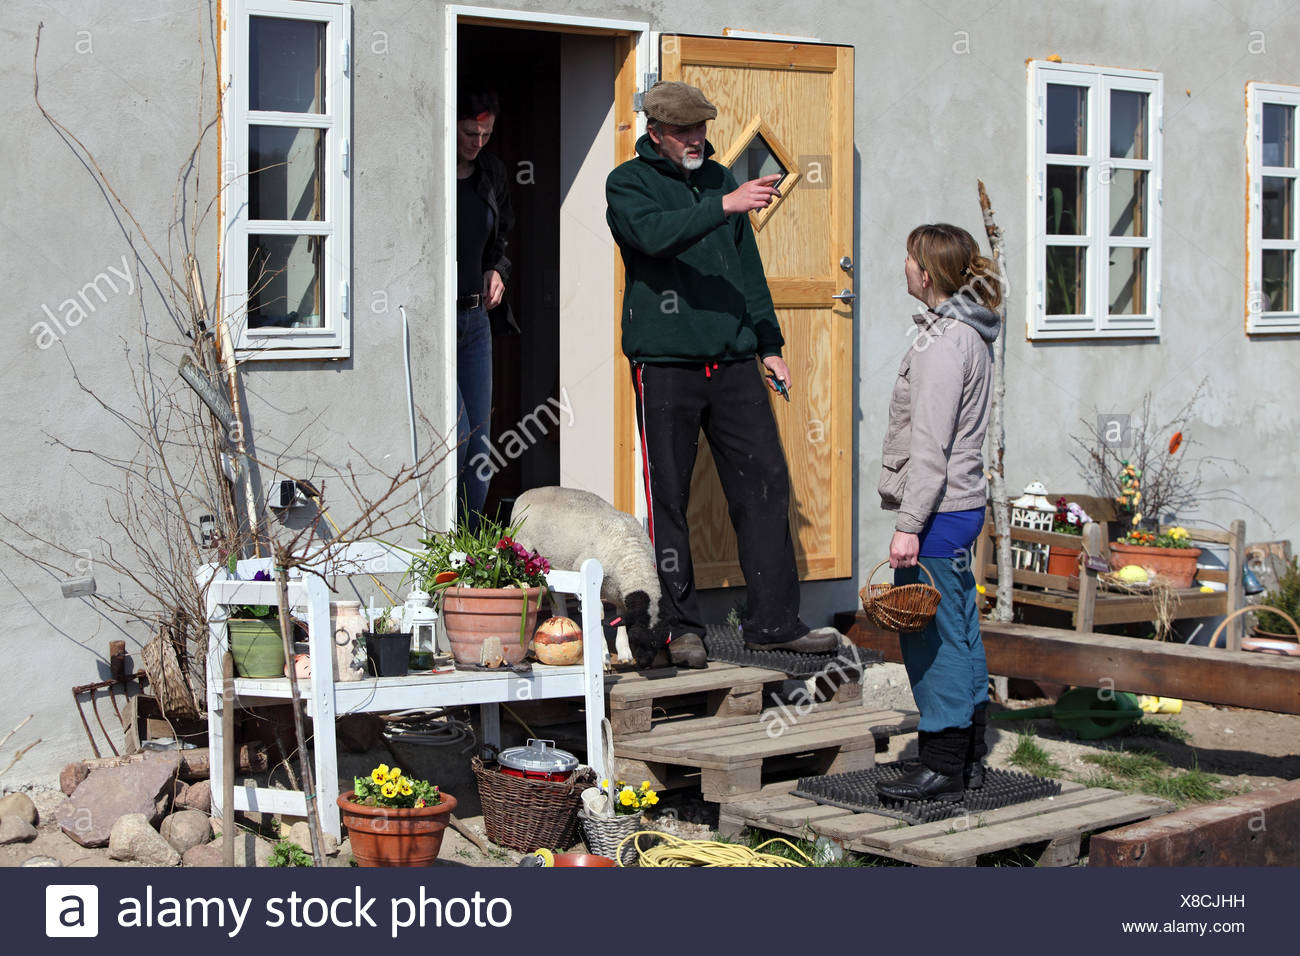 New Kätwin, Germany, man recalls a woman from his plot - Stock Image